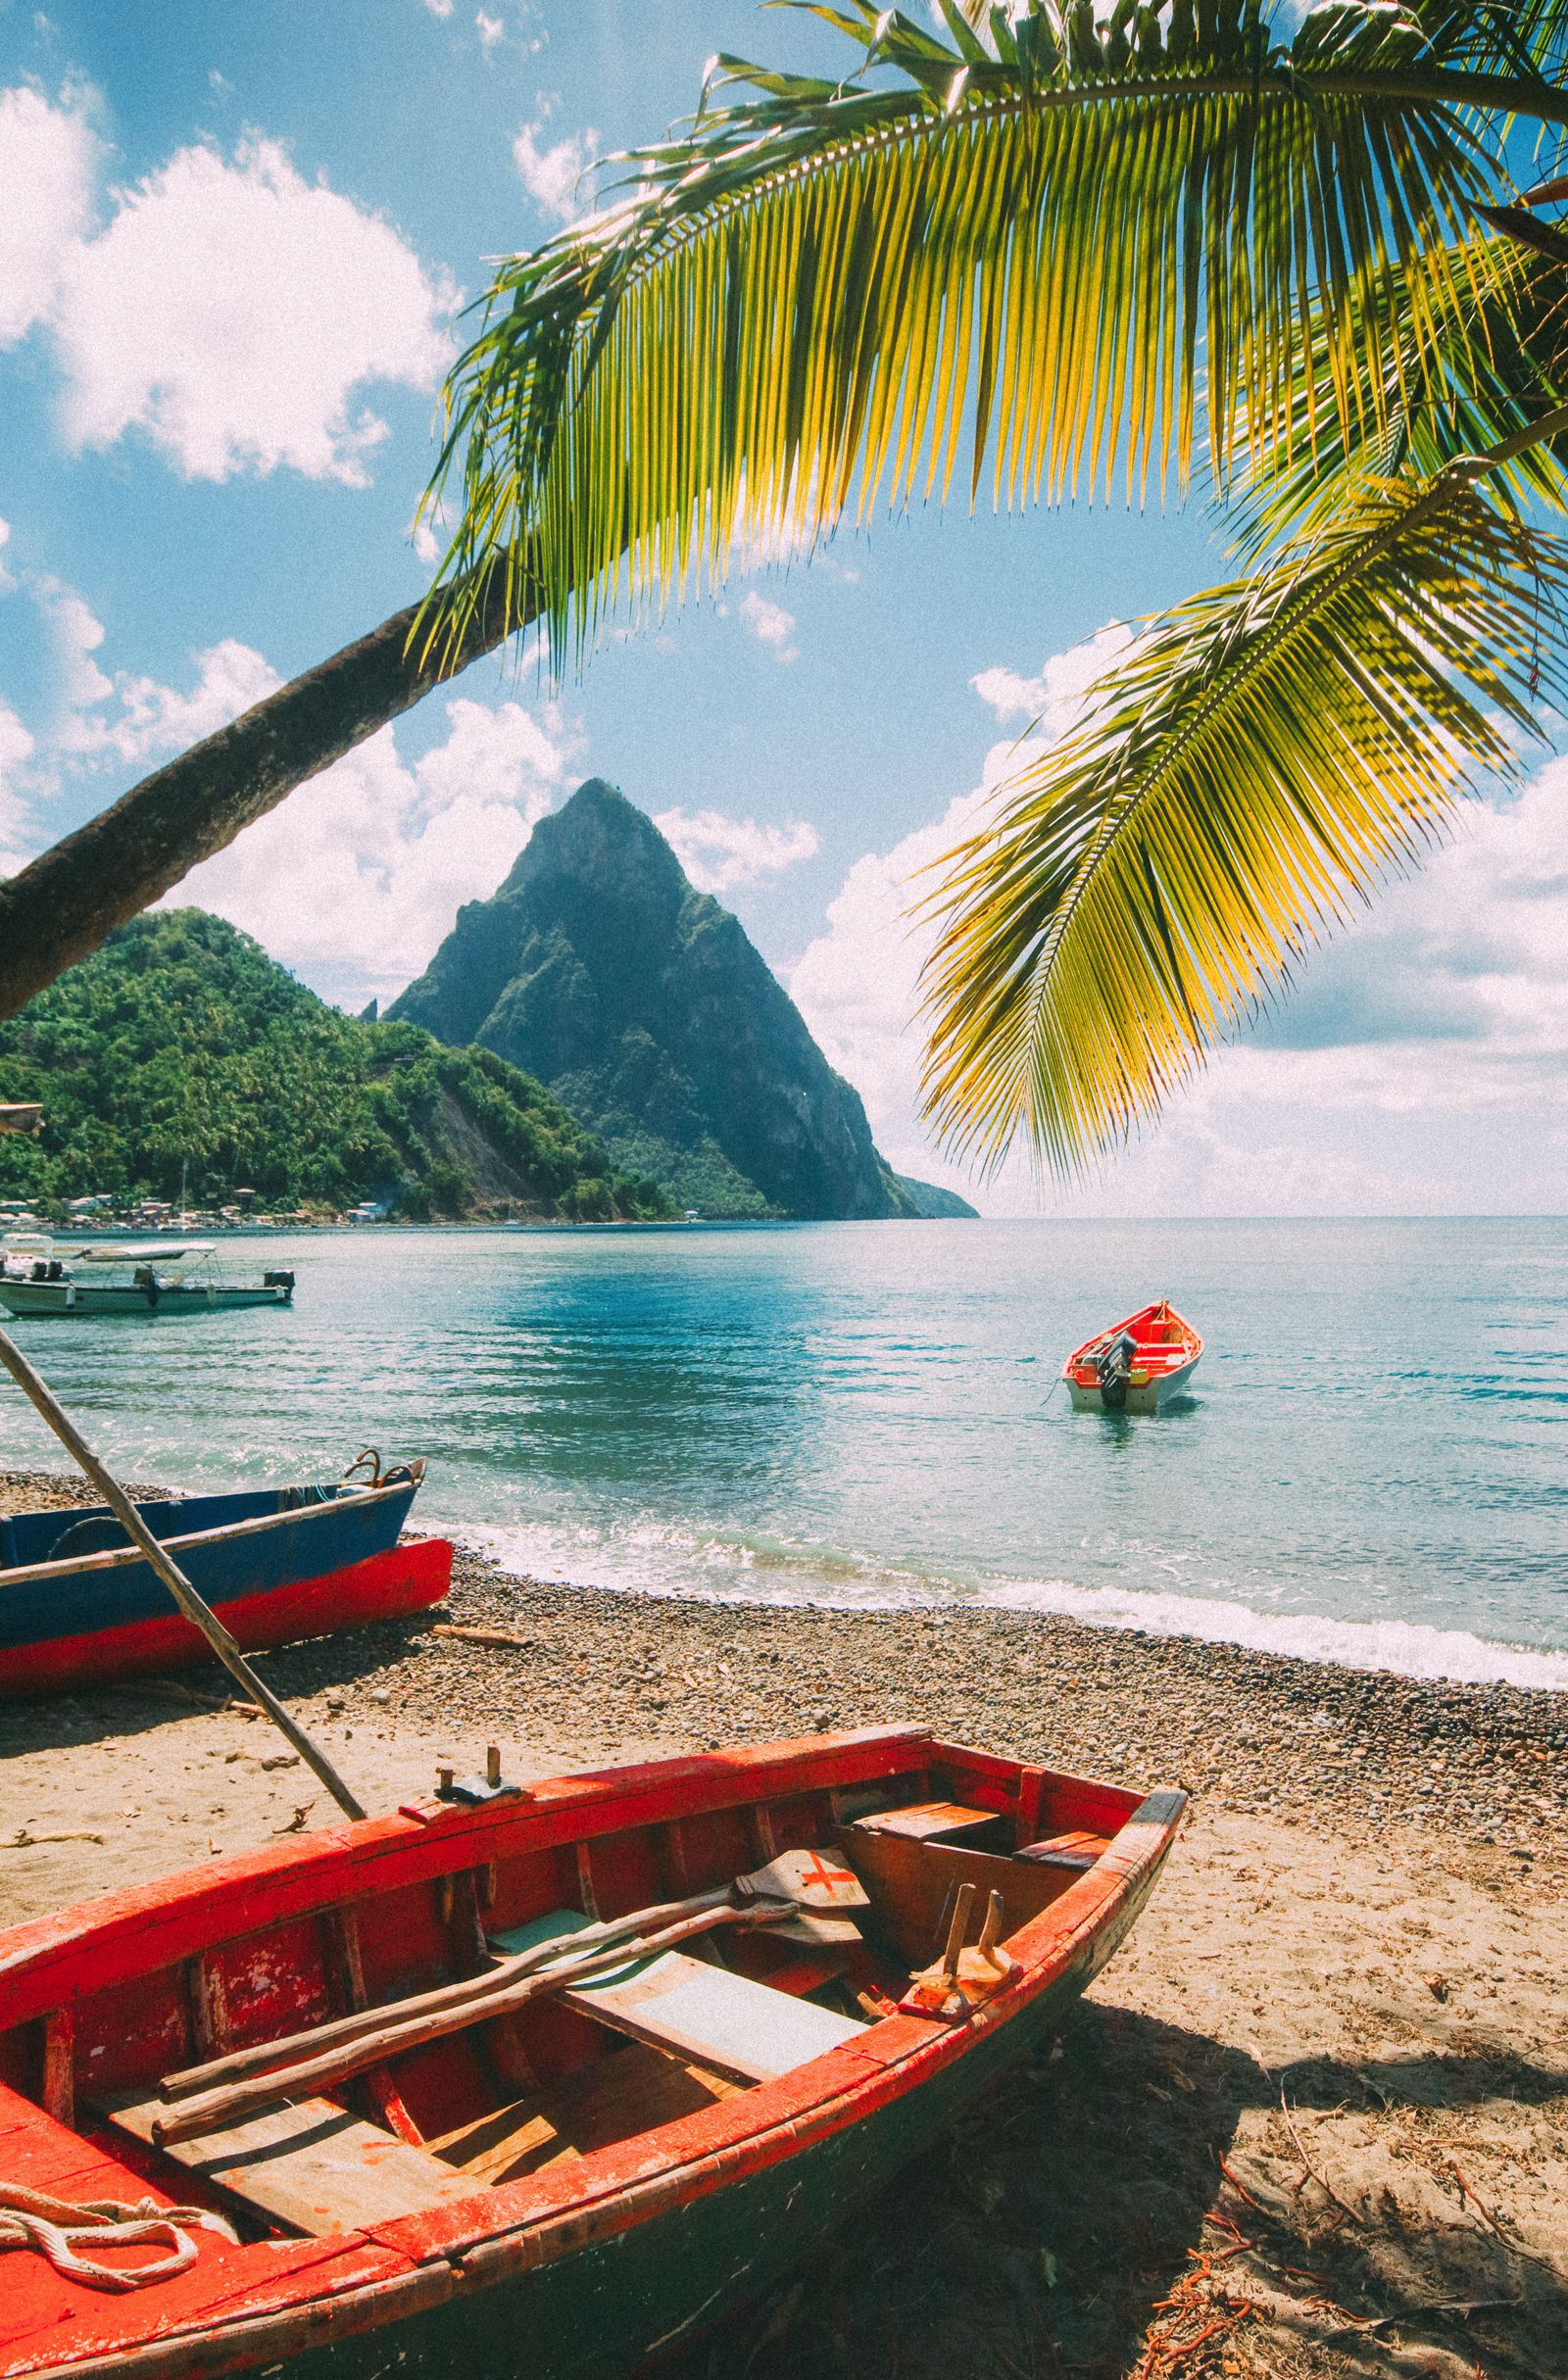 11 Fantastic Places To Visit In The Caribbean Island Of St Lucia (6)